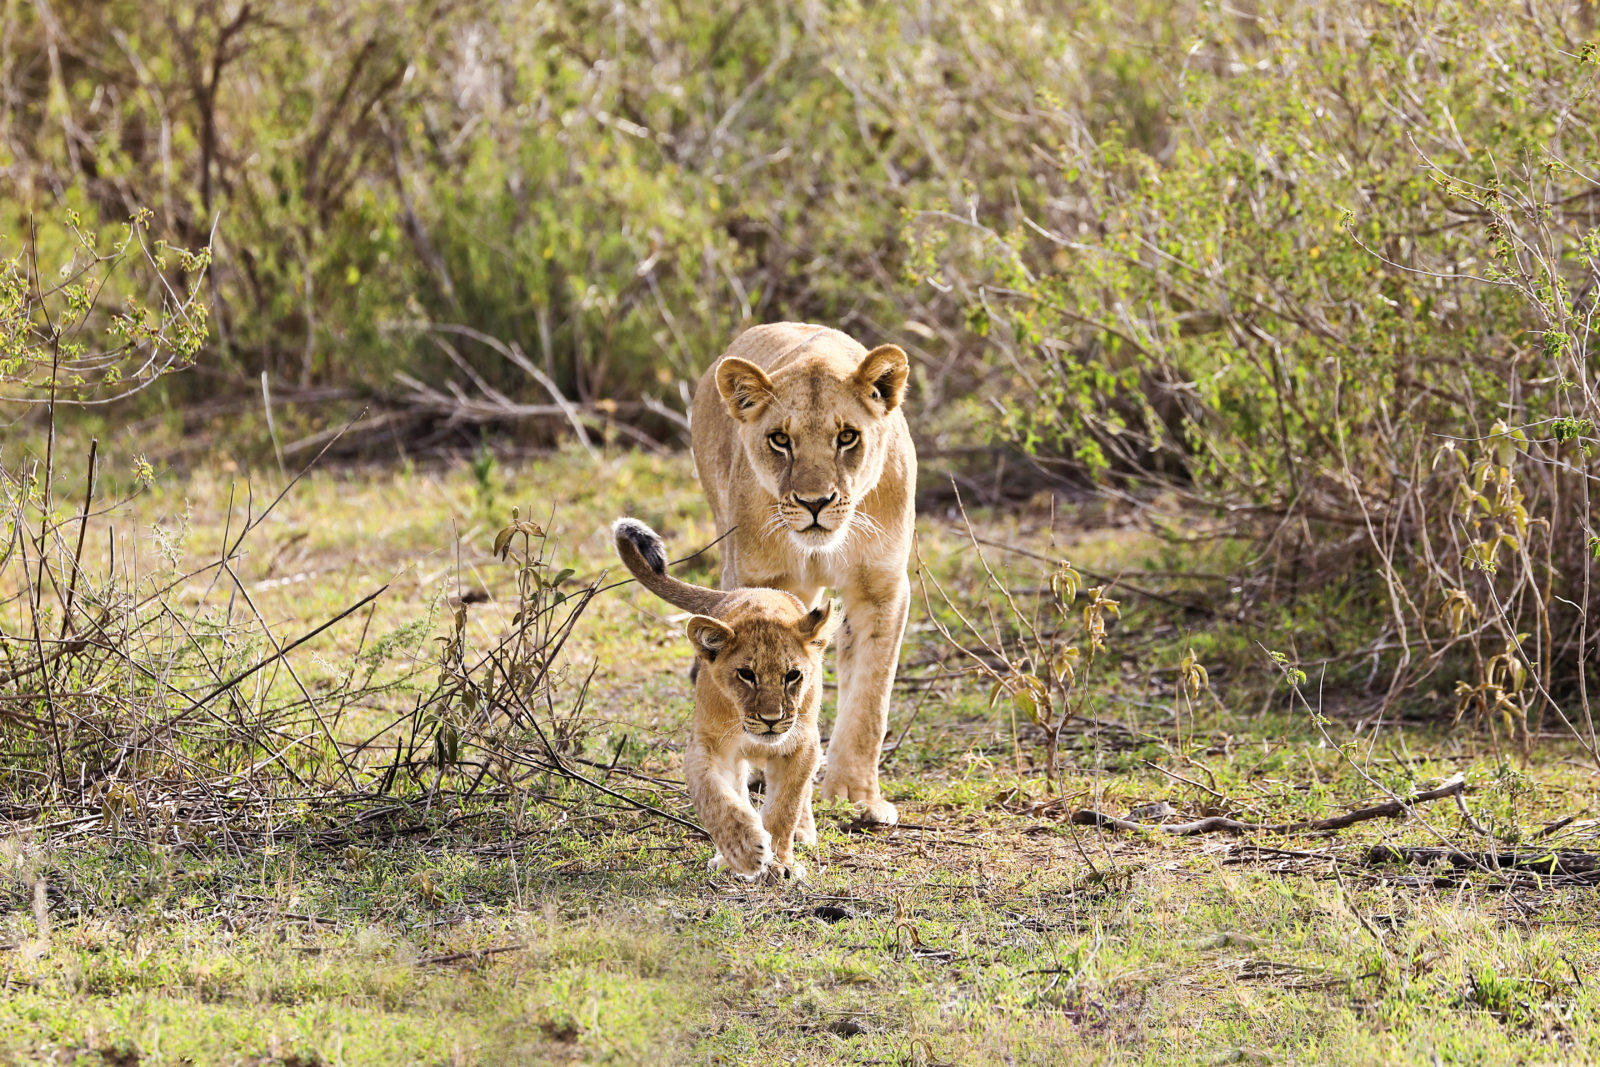 A lioness and a cub walk in Tanzania.